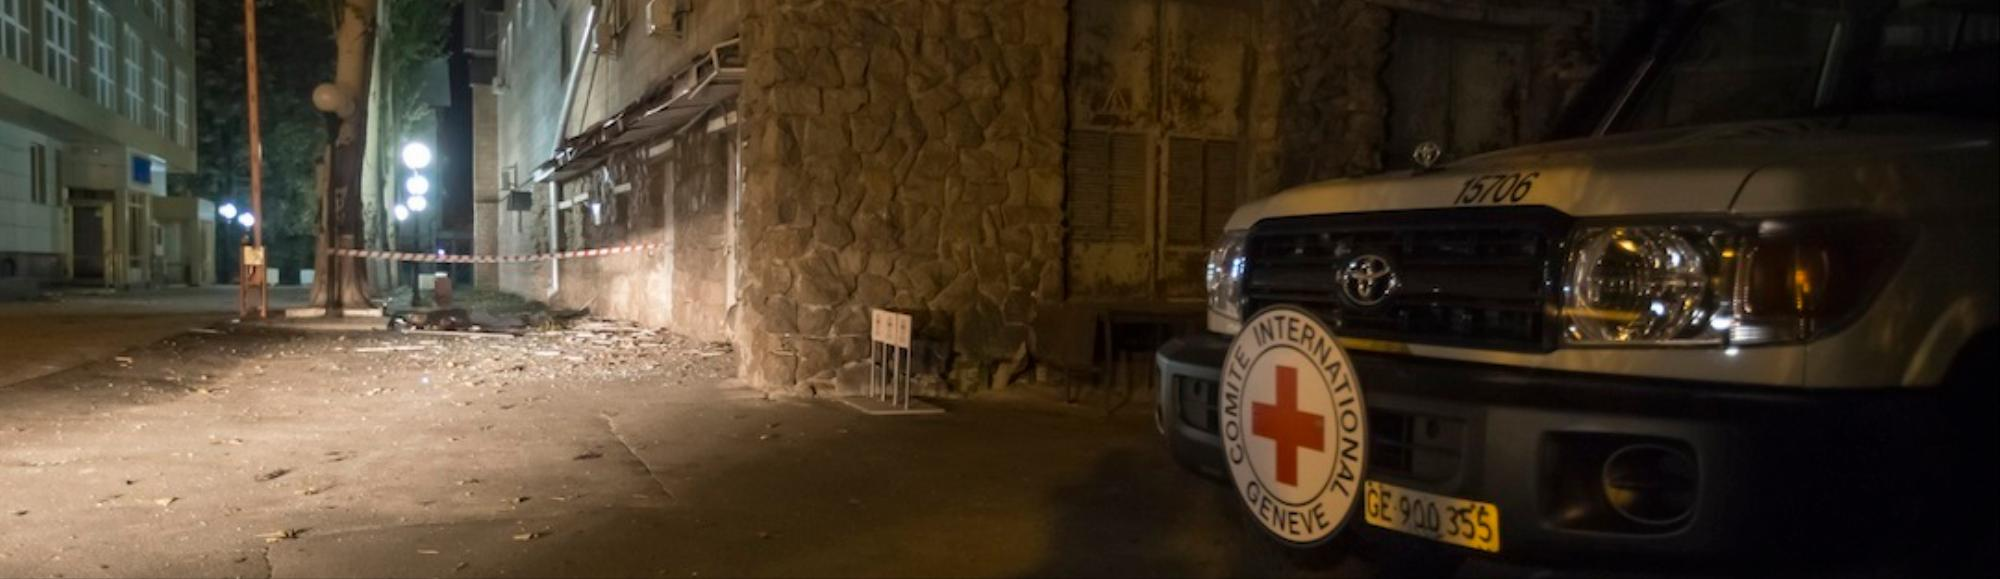 International Red Cross Worker Killed in Ukraine as Battle for Donetsk Airport Heats Up